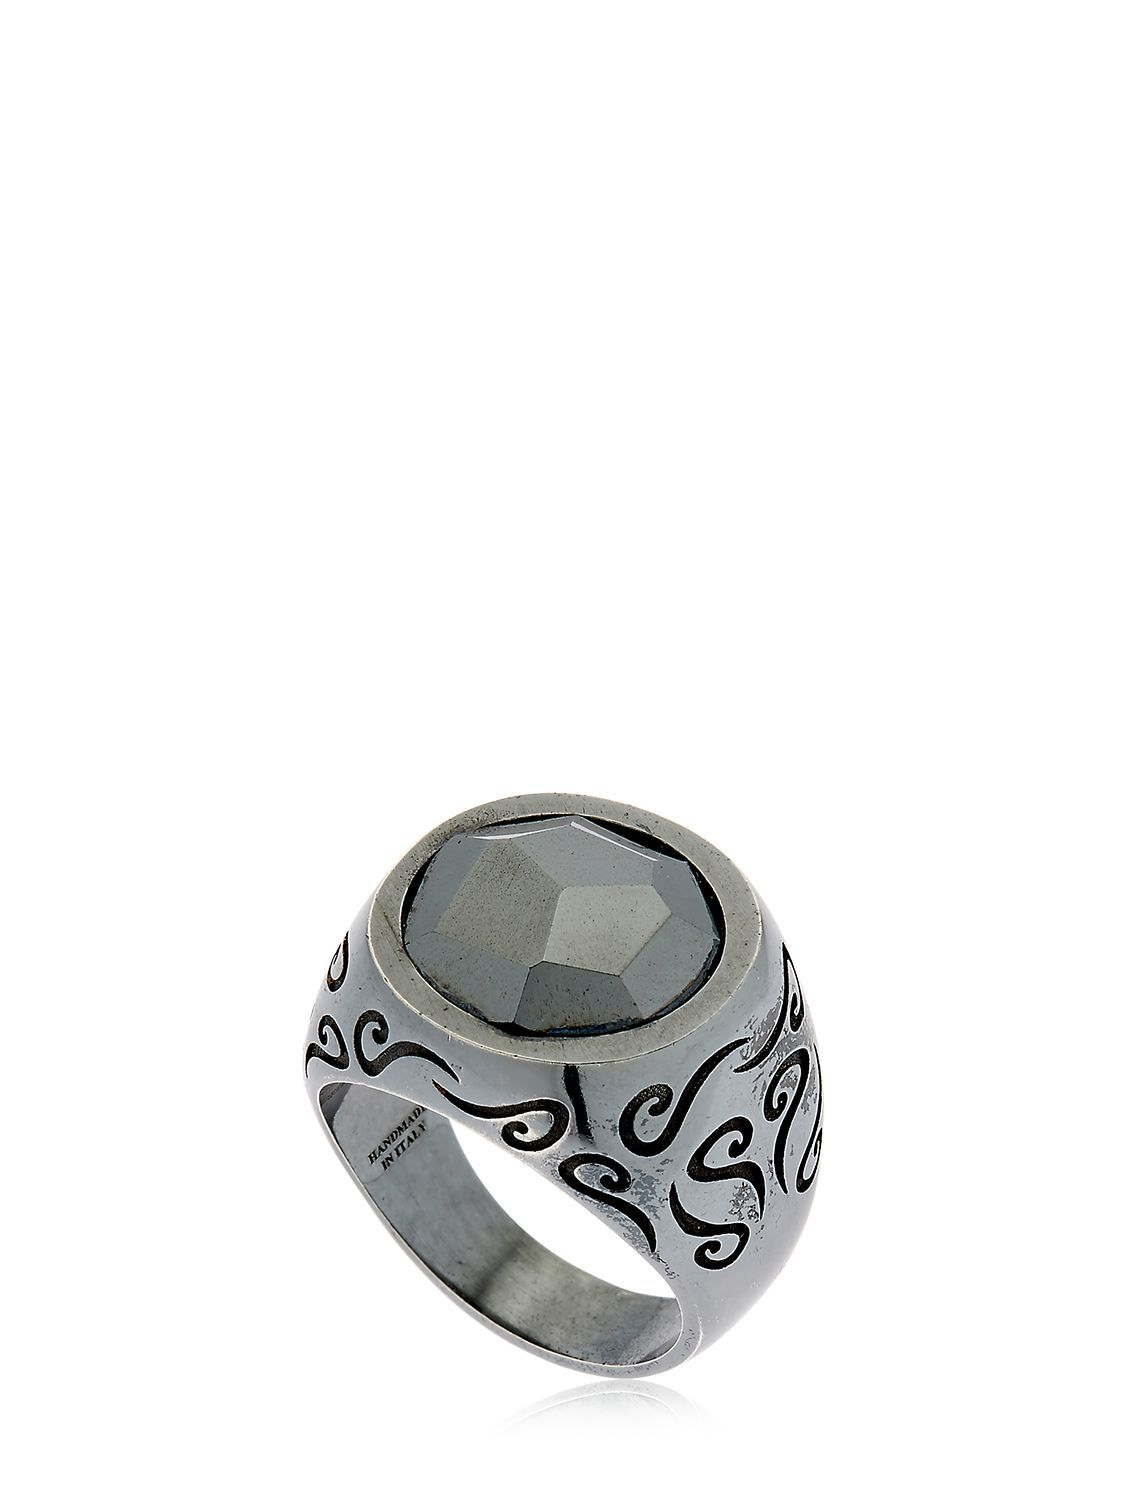 Marco Dal Maso Mens Silver Band Ring with Green Sapphire, Size 10